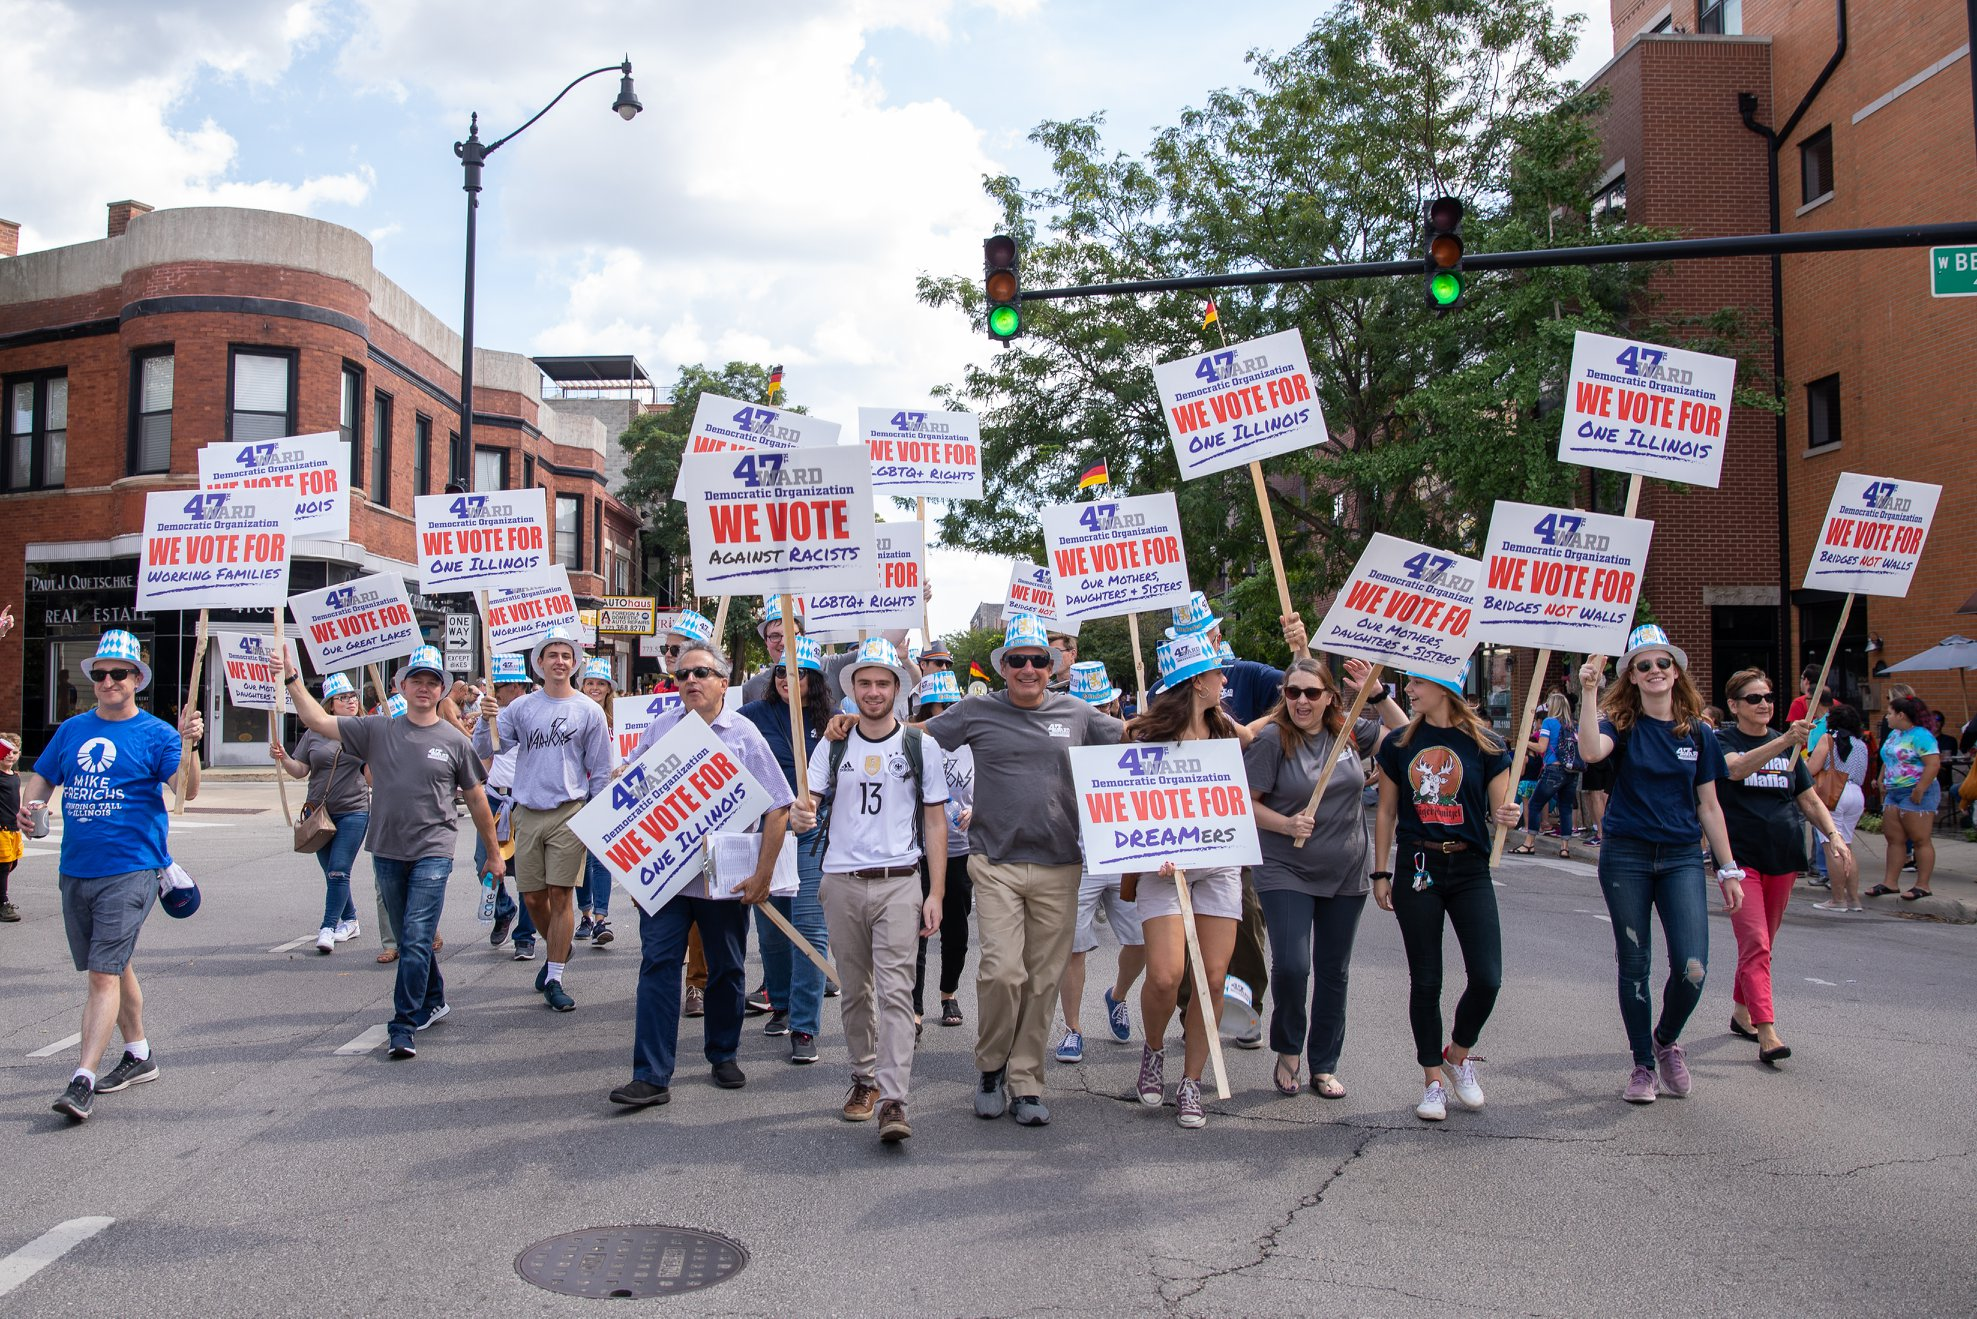 Image of 47th Ward members marching.